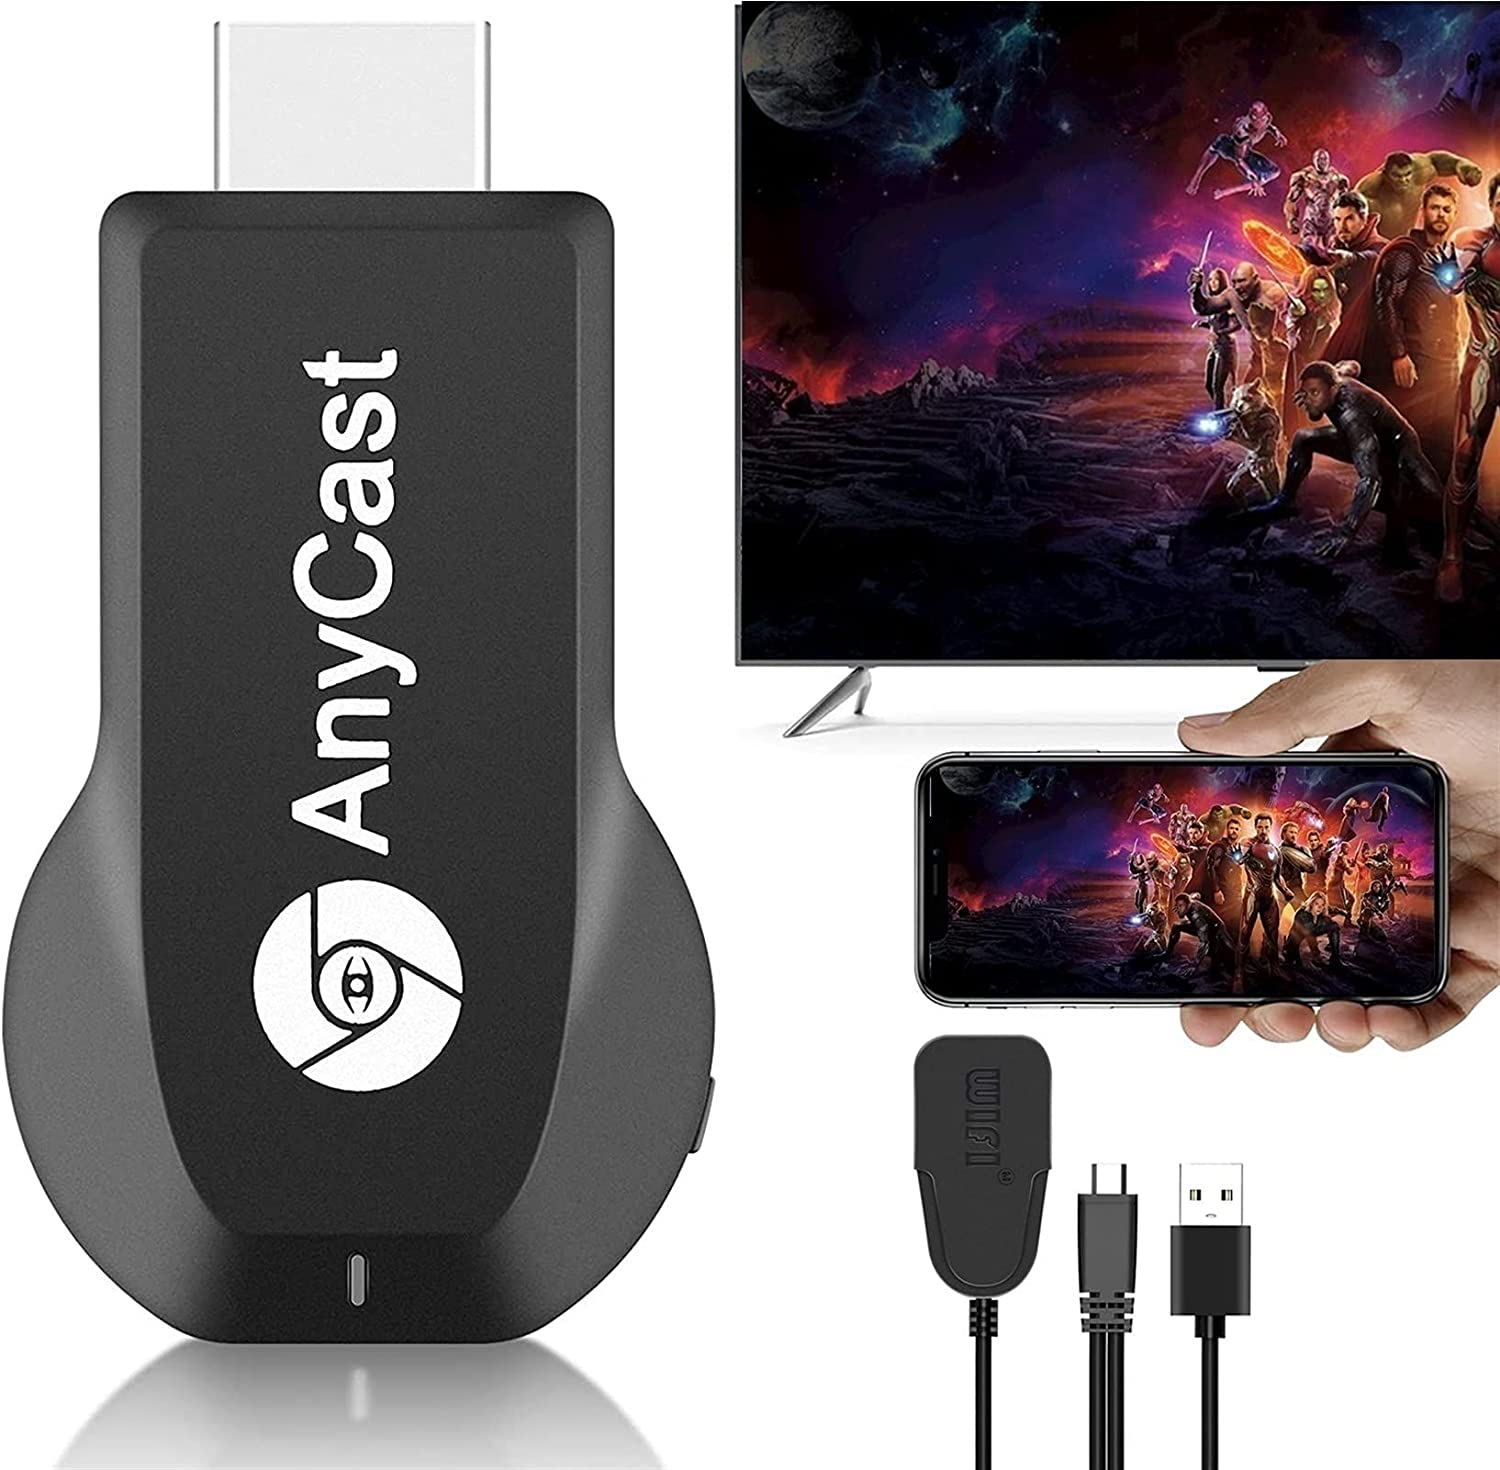 Streaming Media Ranking TOP4 Ranking integrated 1st place Players Wireless HDMI Adapter Ultra H Display 4K